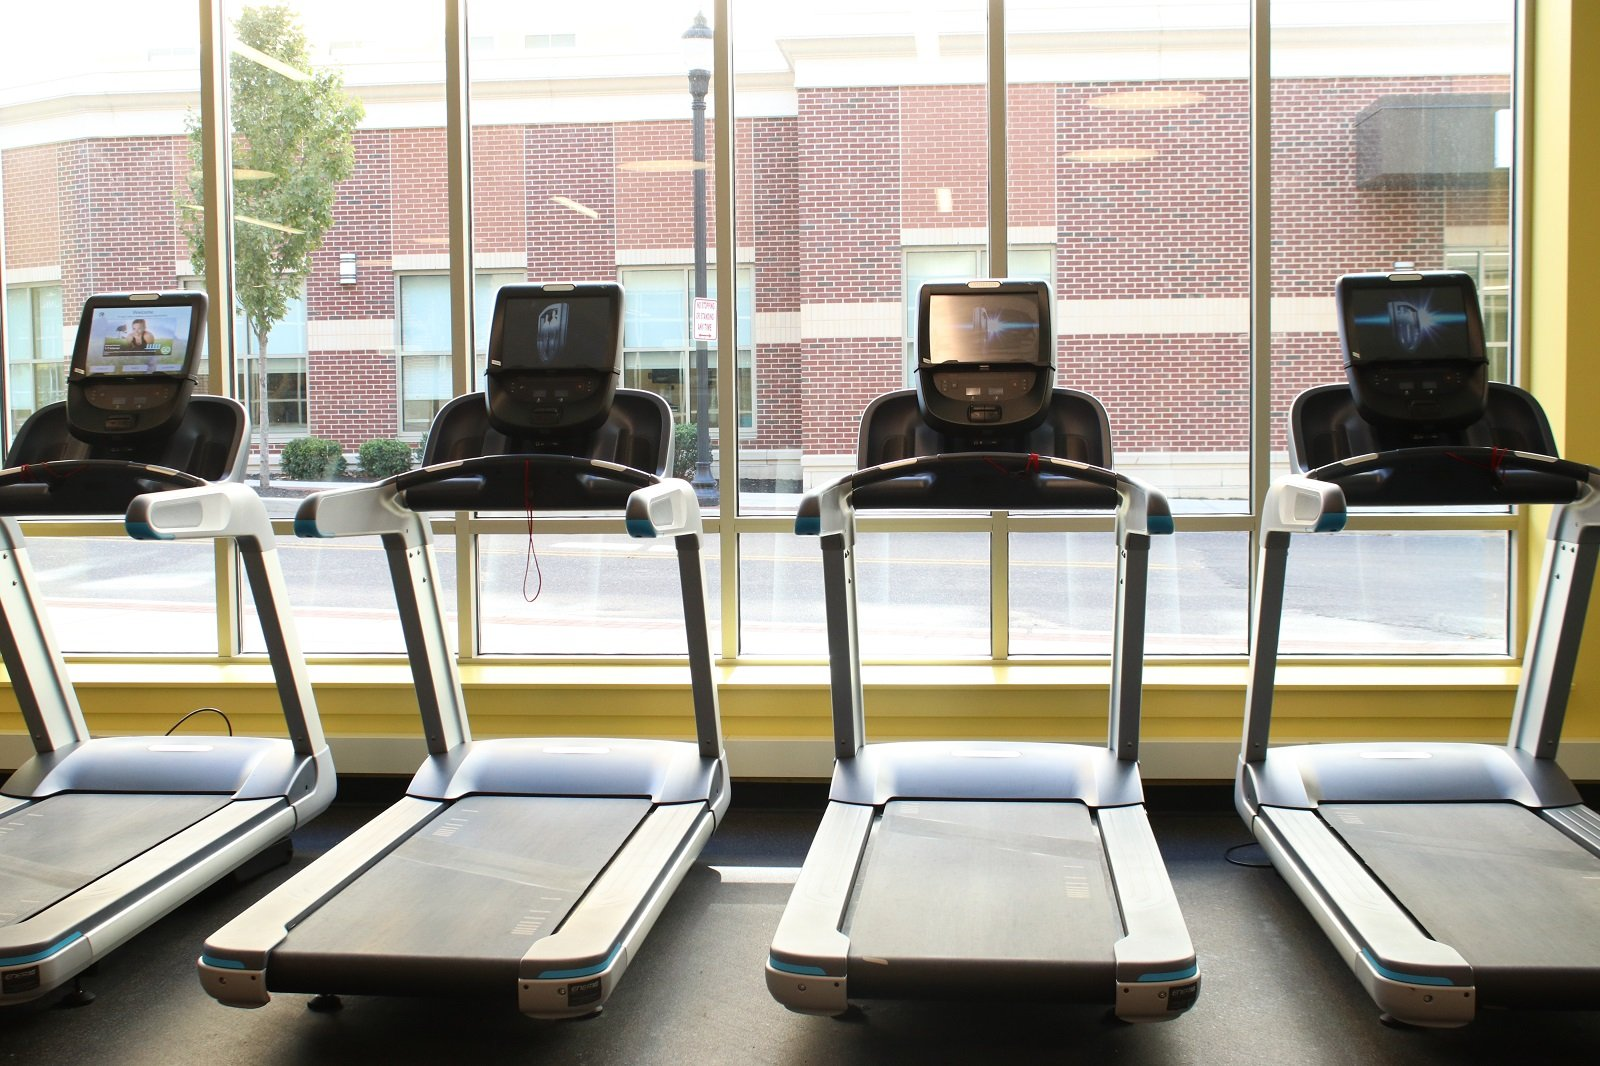 Treadmills at the new Rowan Fitness Center